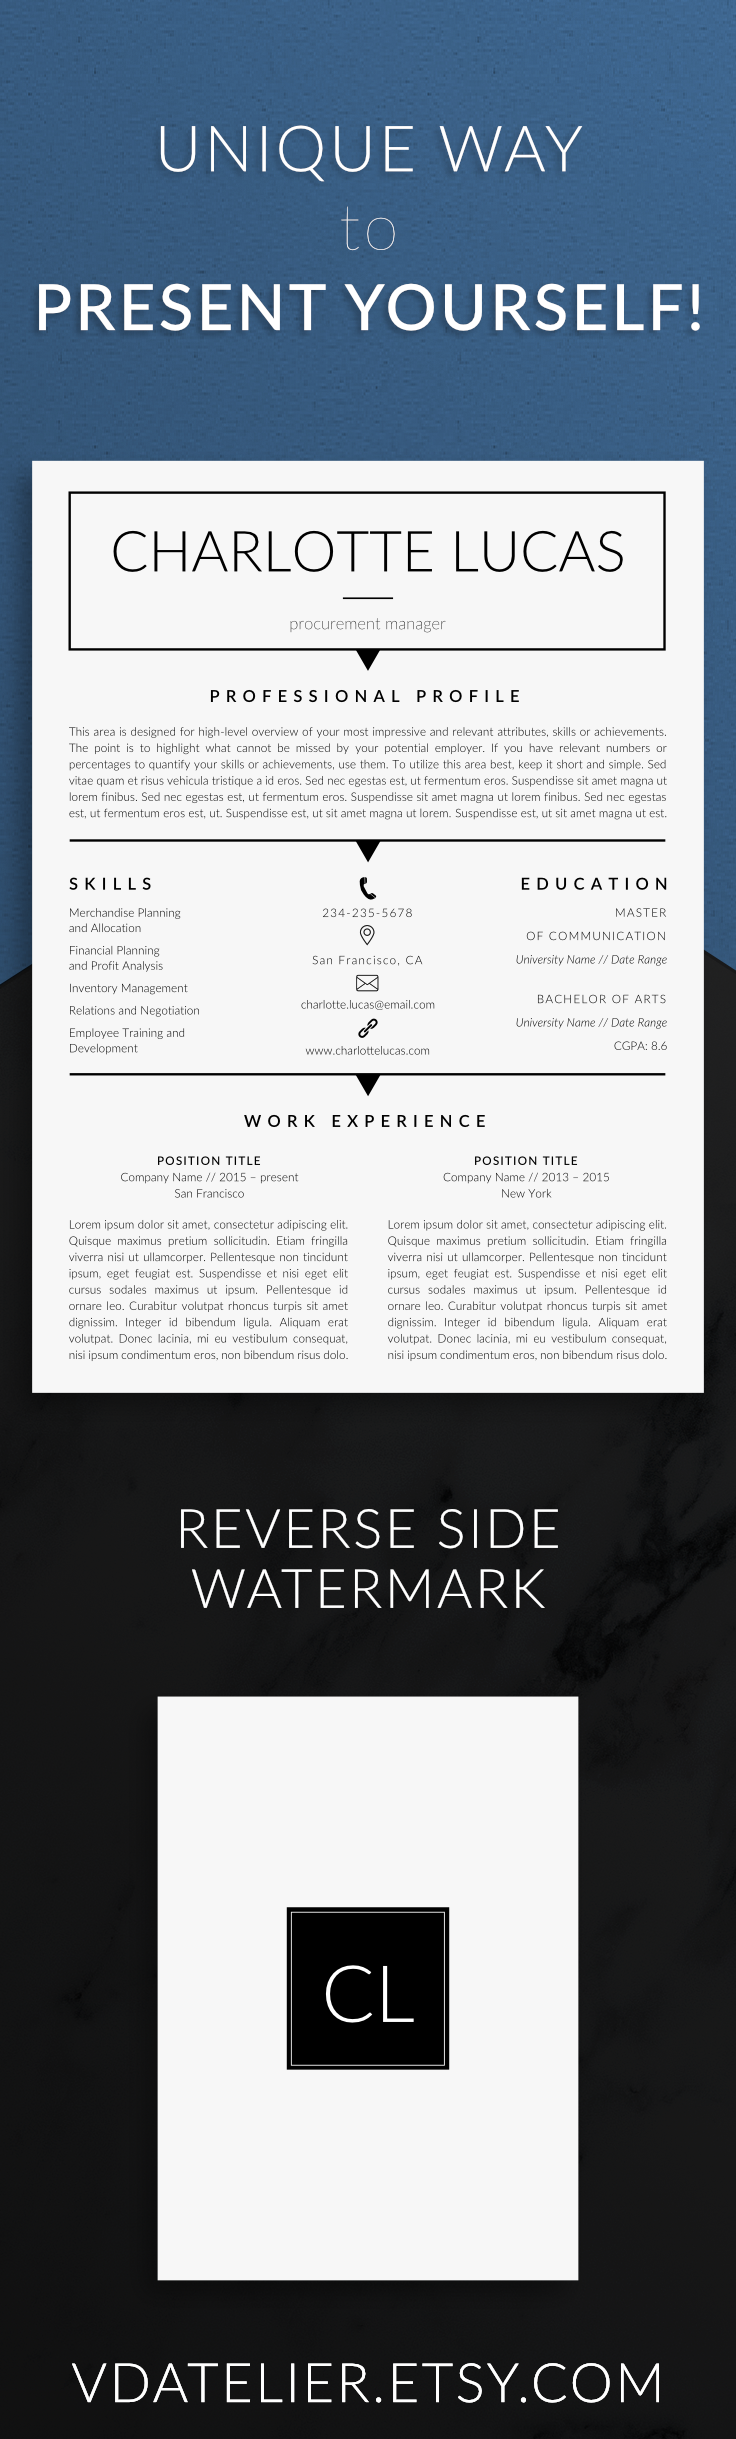 Professional Resume Template for modern job hunters. #resume ...